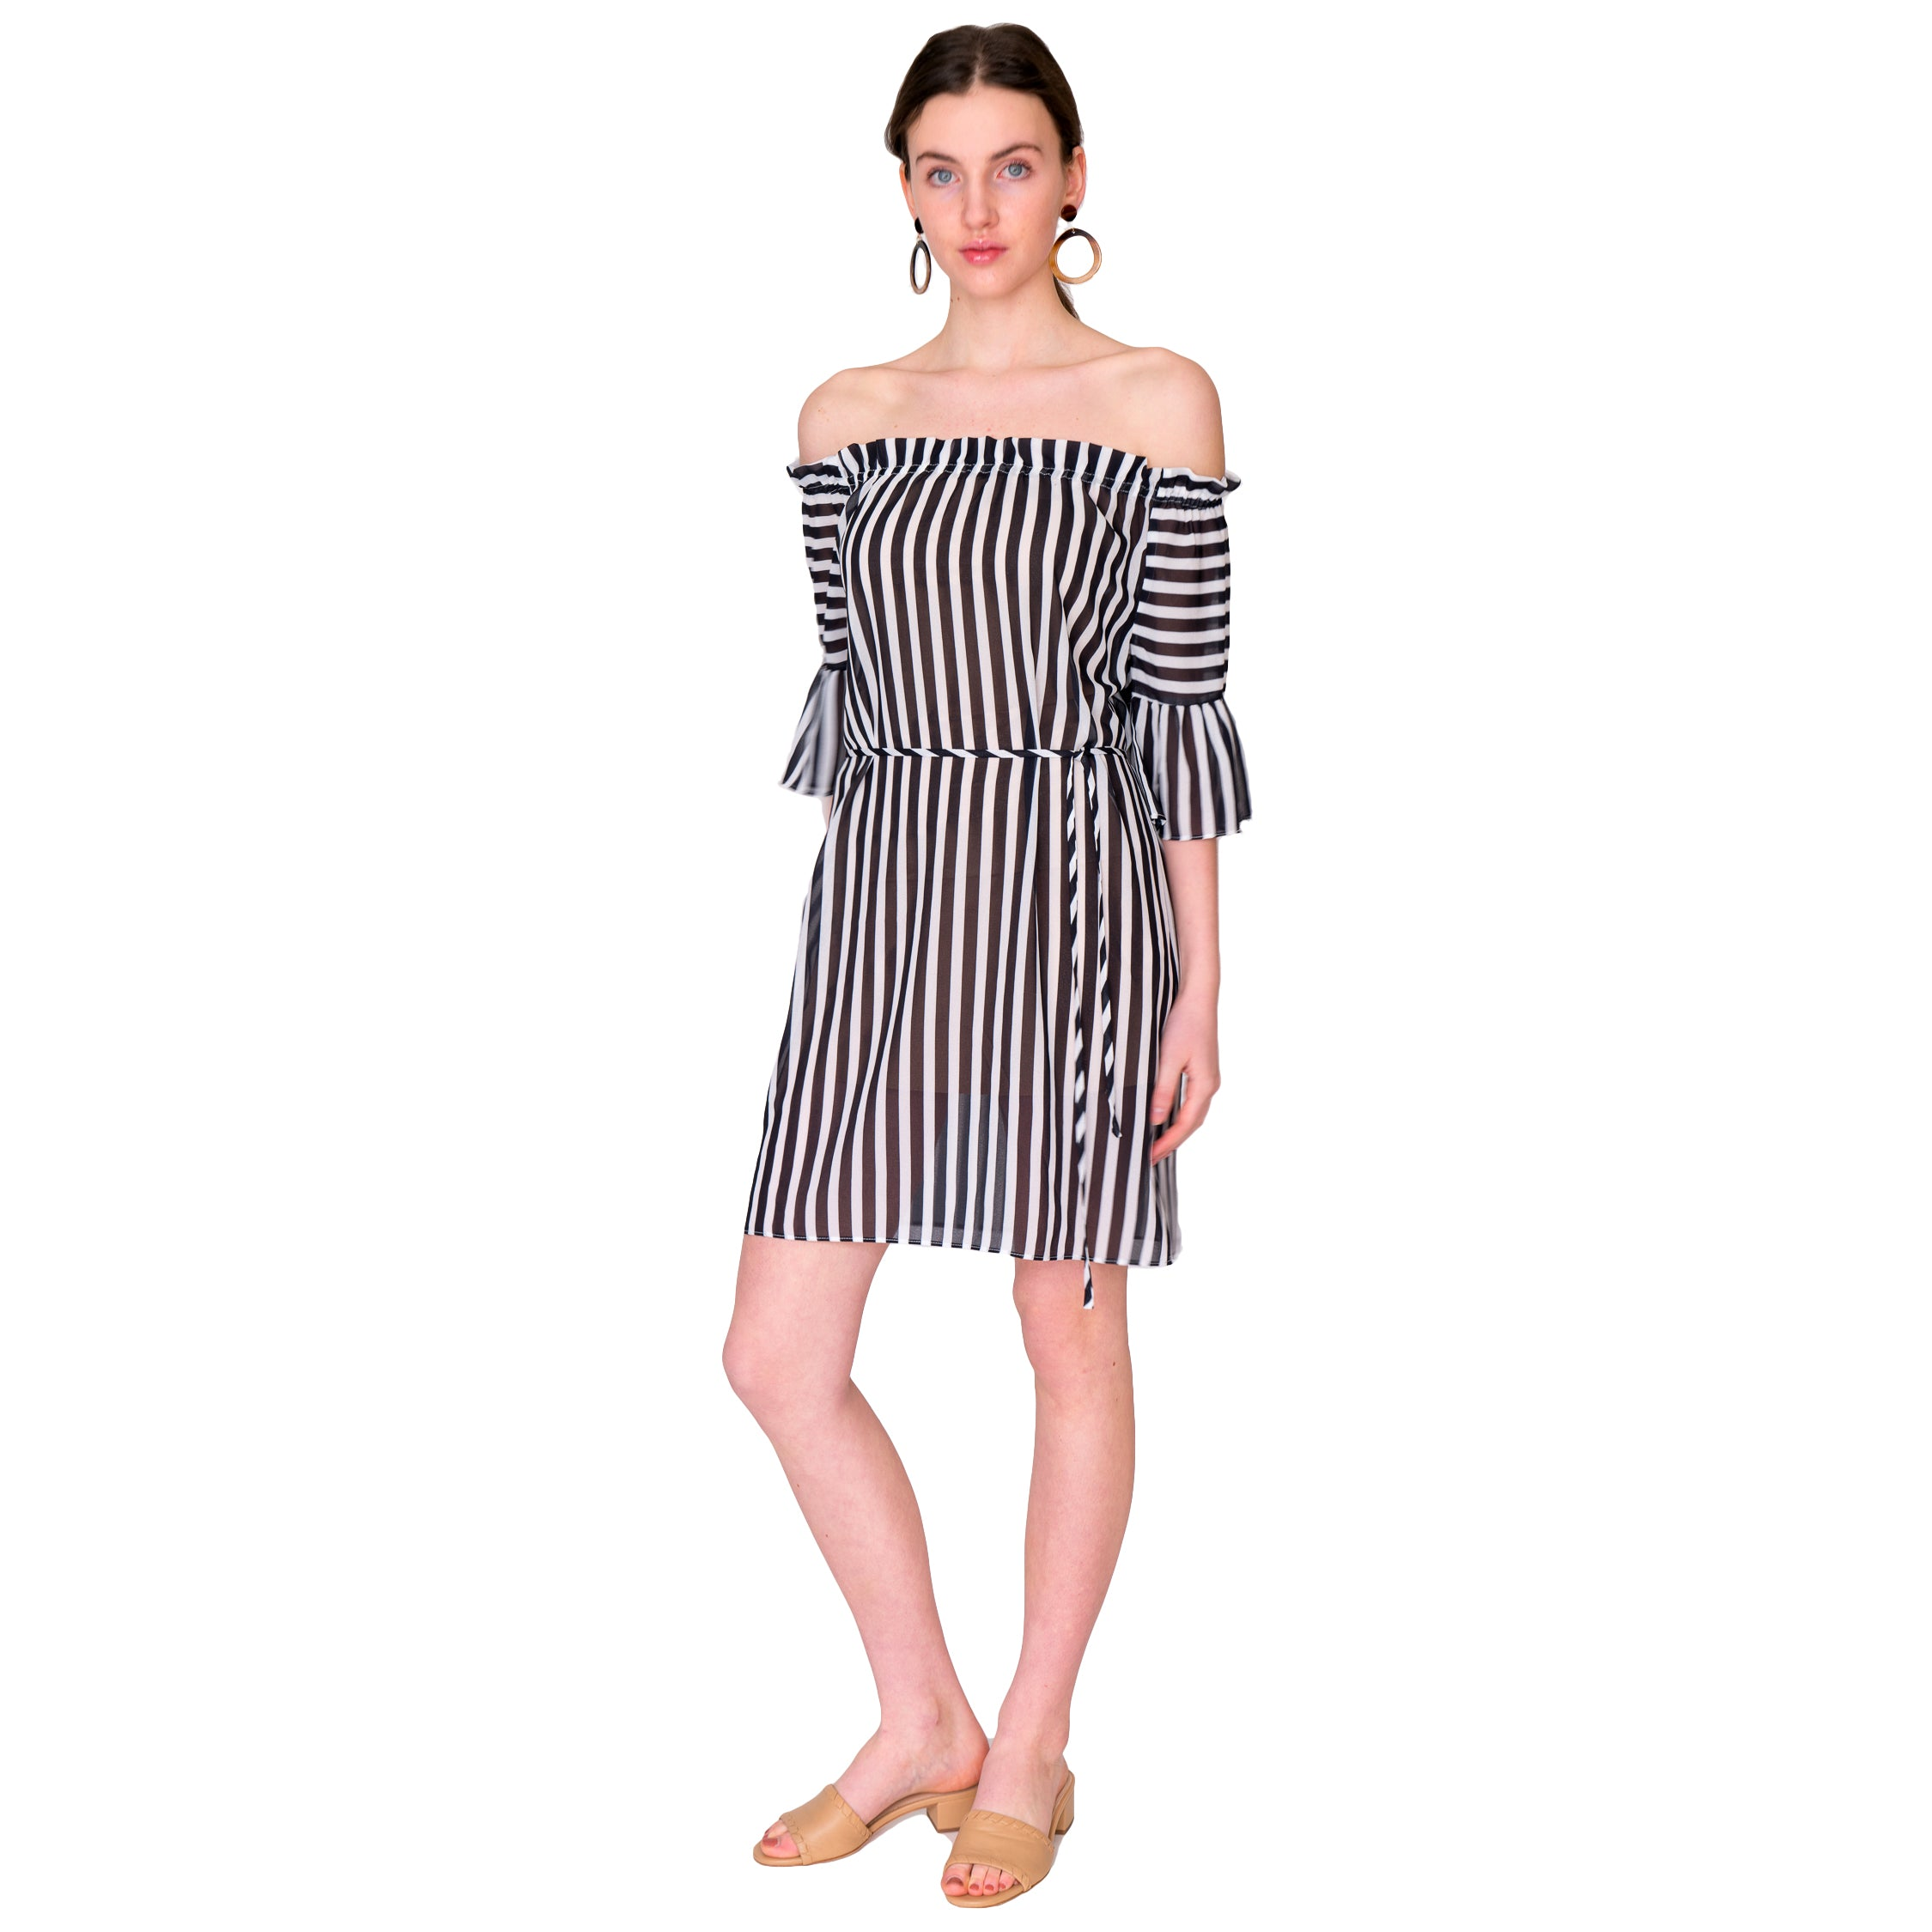 Mae On/Off Shoulder Dress in Black and White Stripe - Elizabeth Ackerman New York